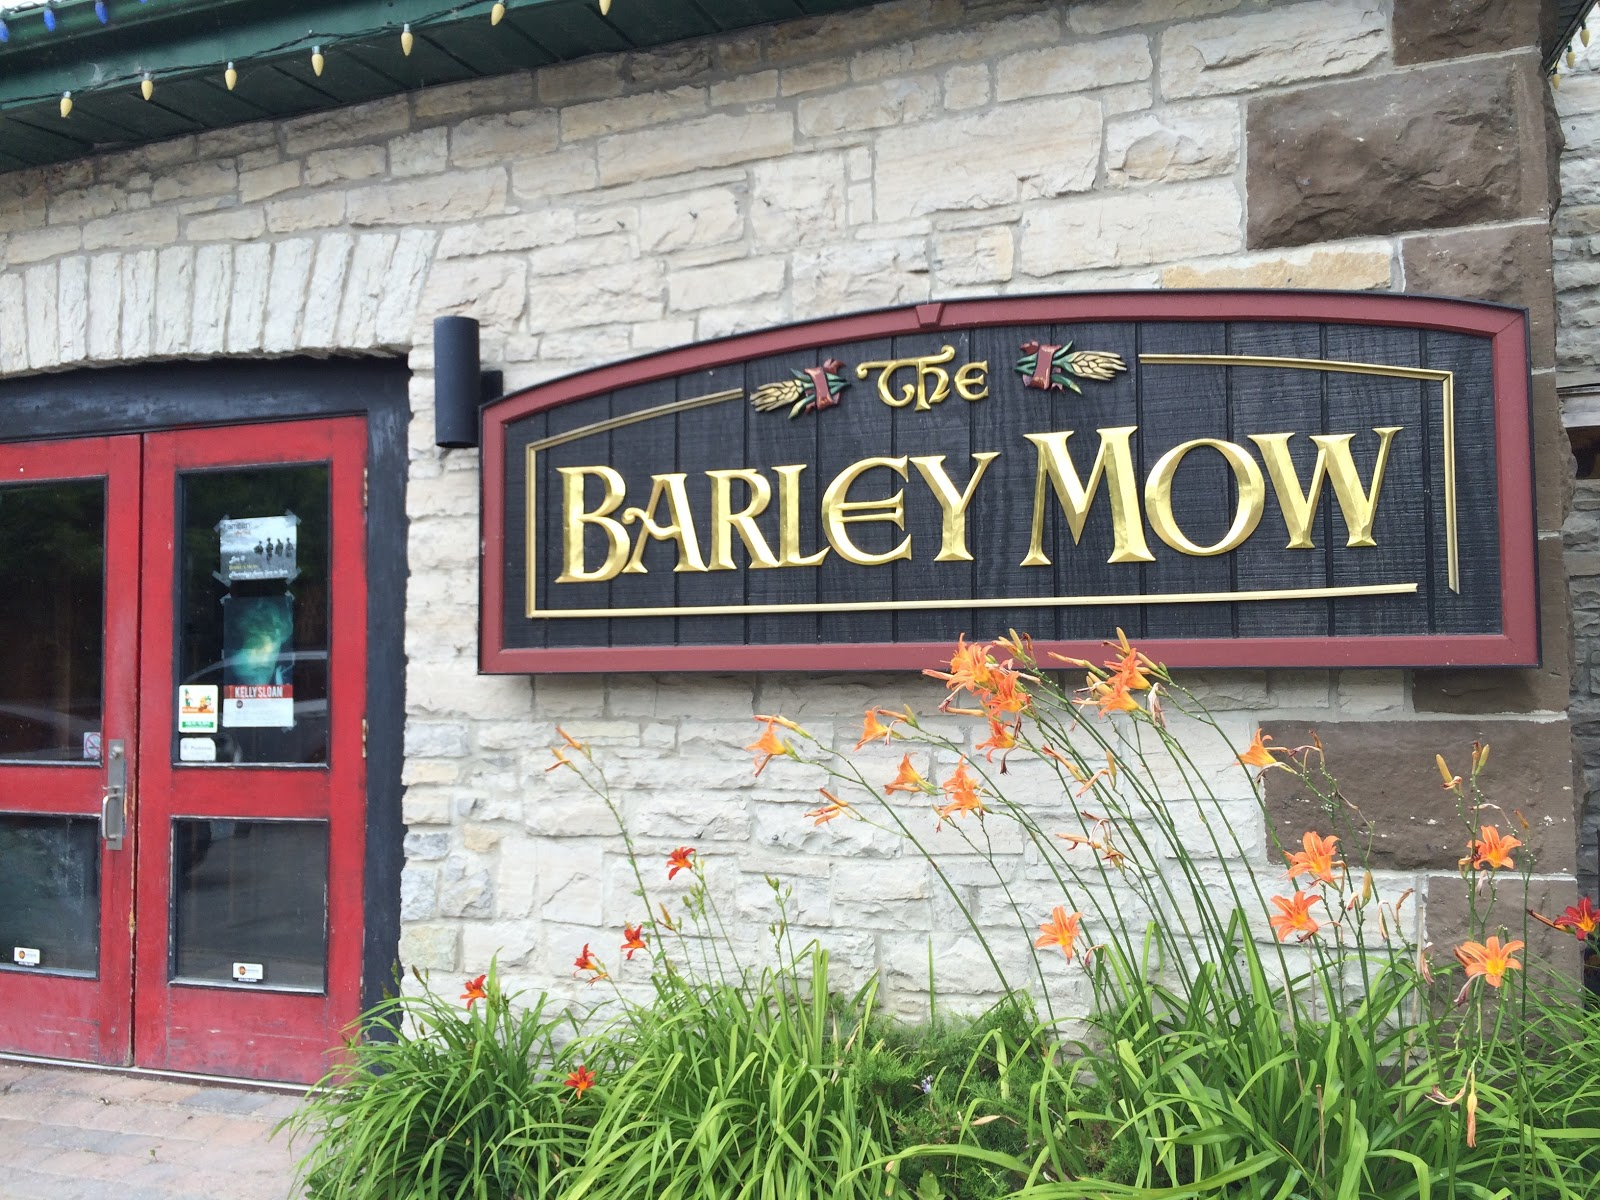 The Barley Mow pub in Almonte, Ontario